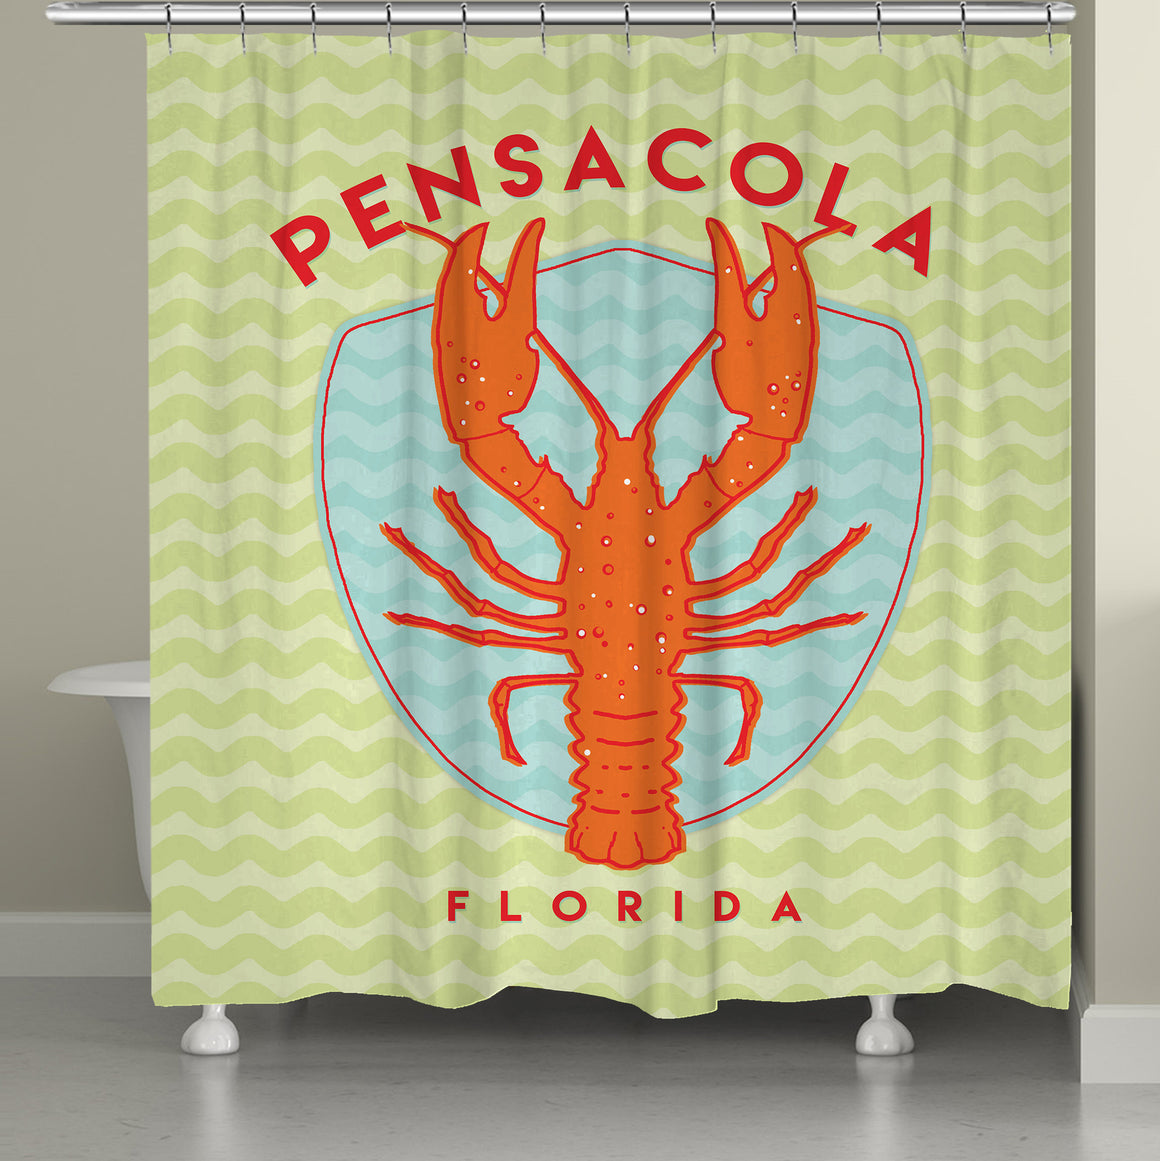 Pensacola Shower Curtain